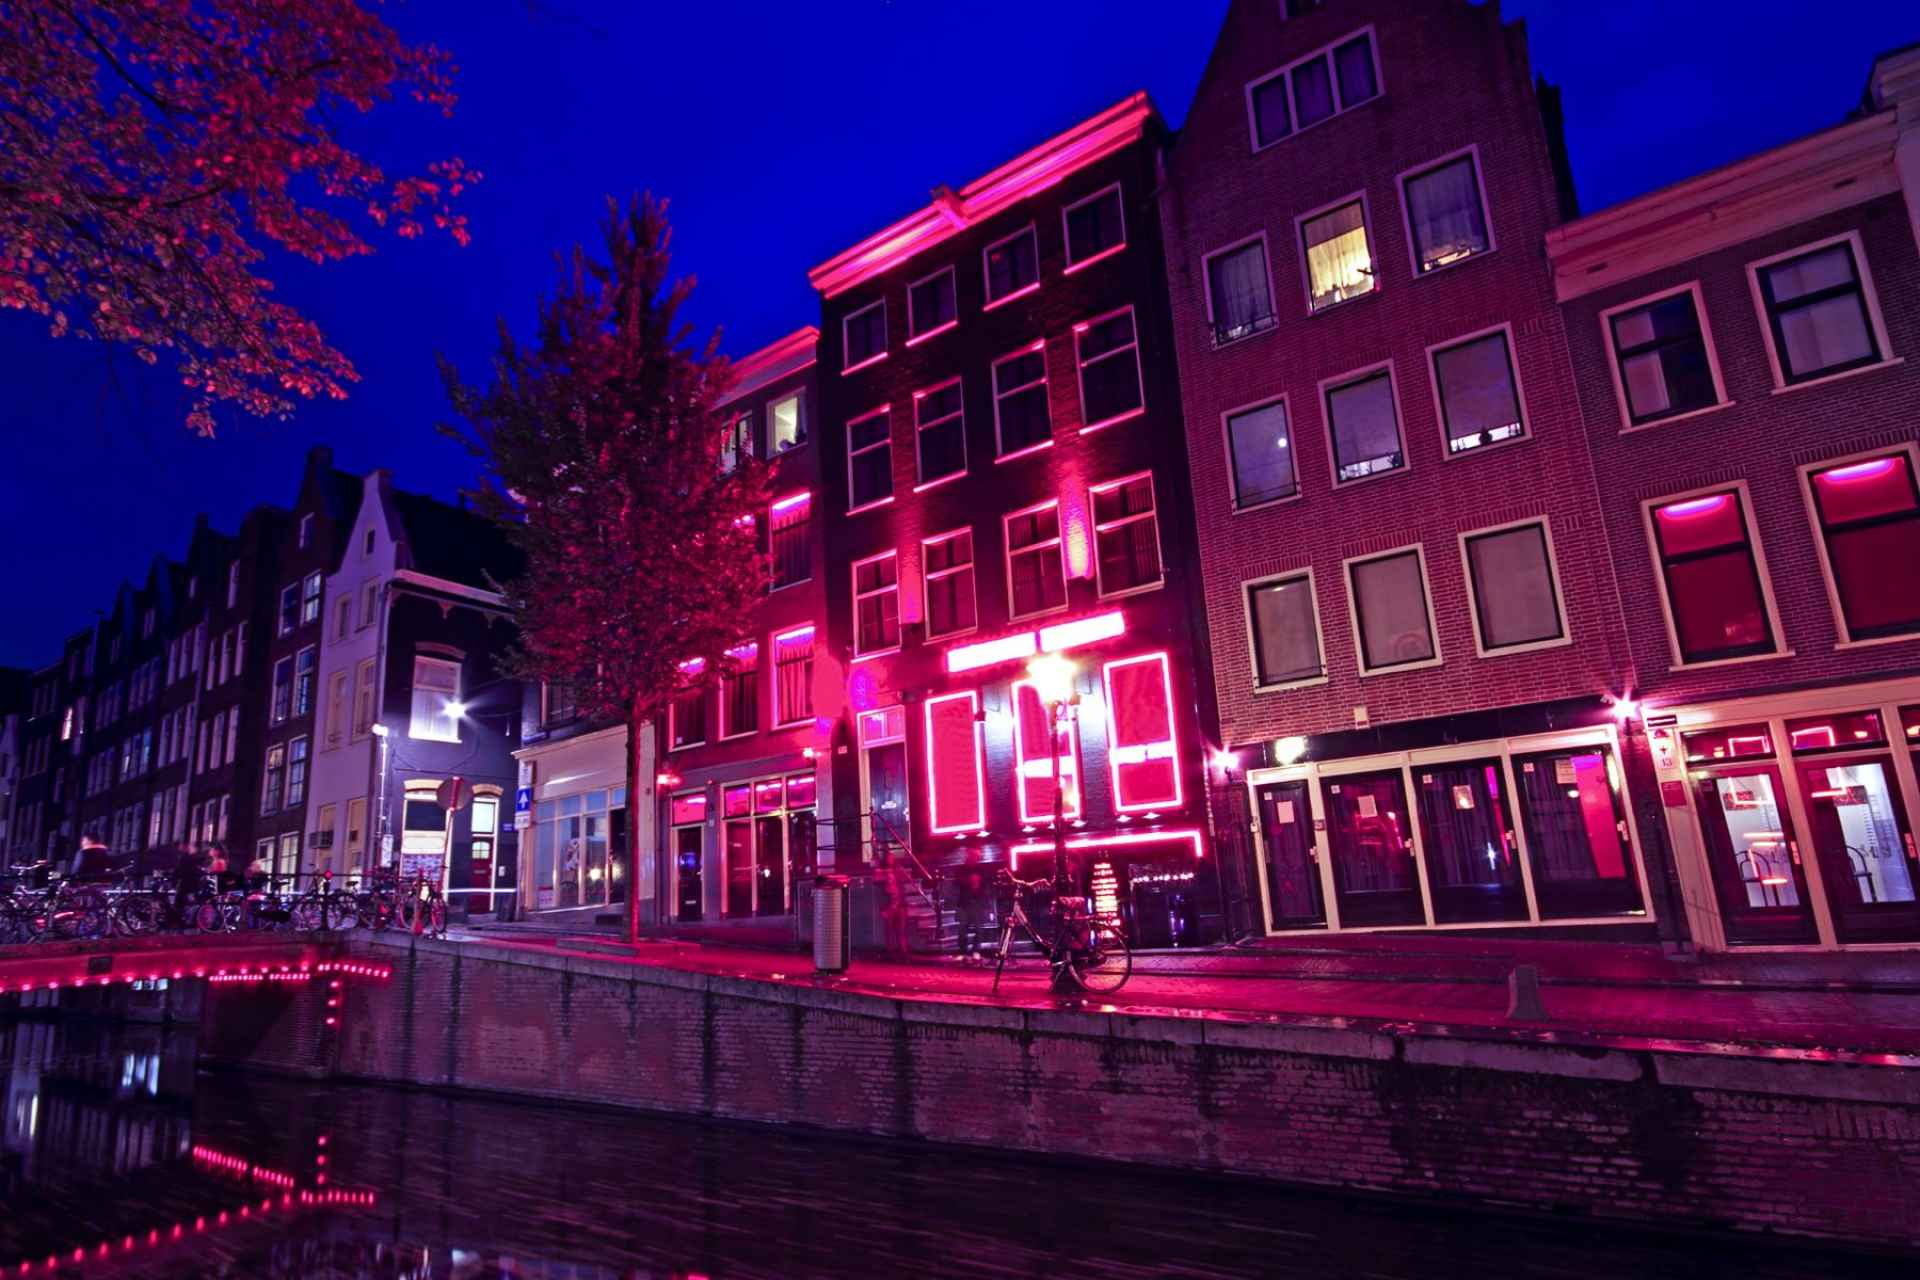 SDC Red Light Districts Amsterdam Sekswerk Adult Entertainment Industrie Reisbestemmingen